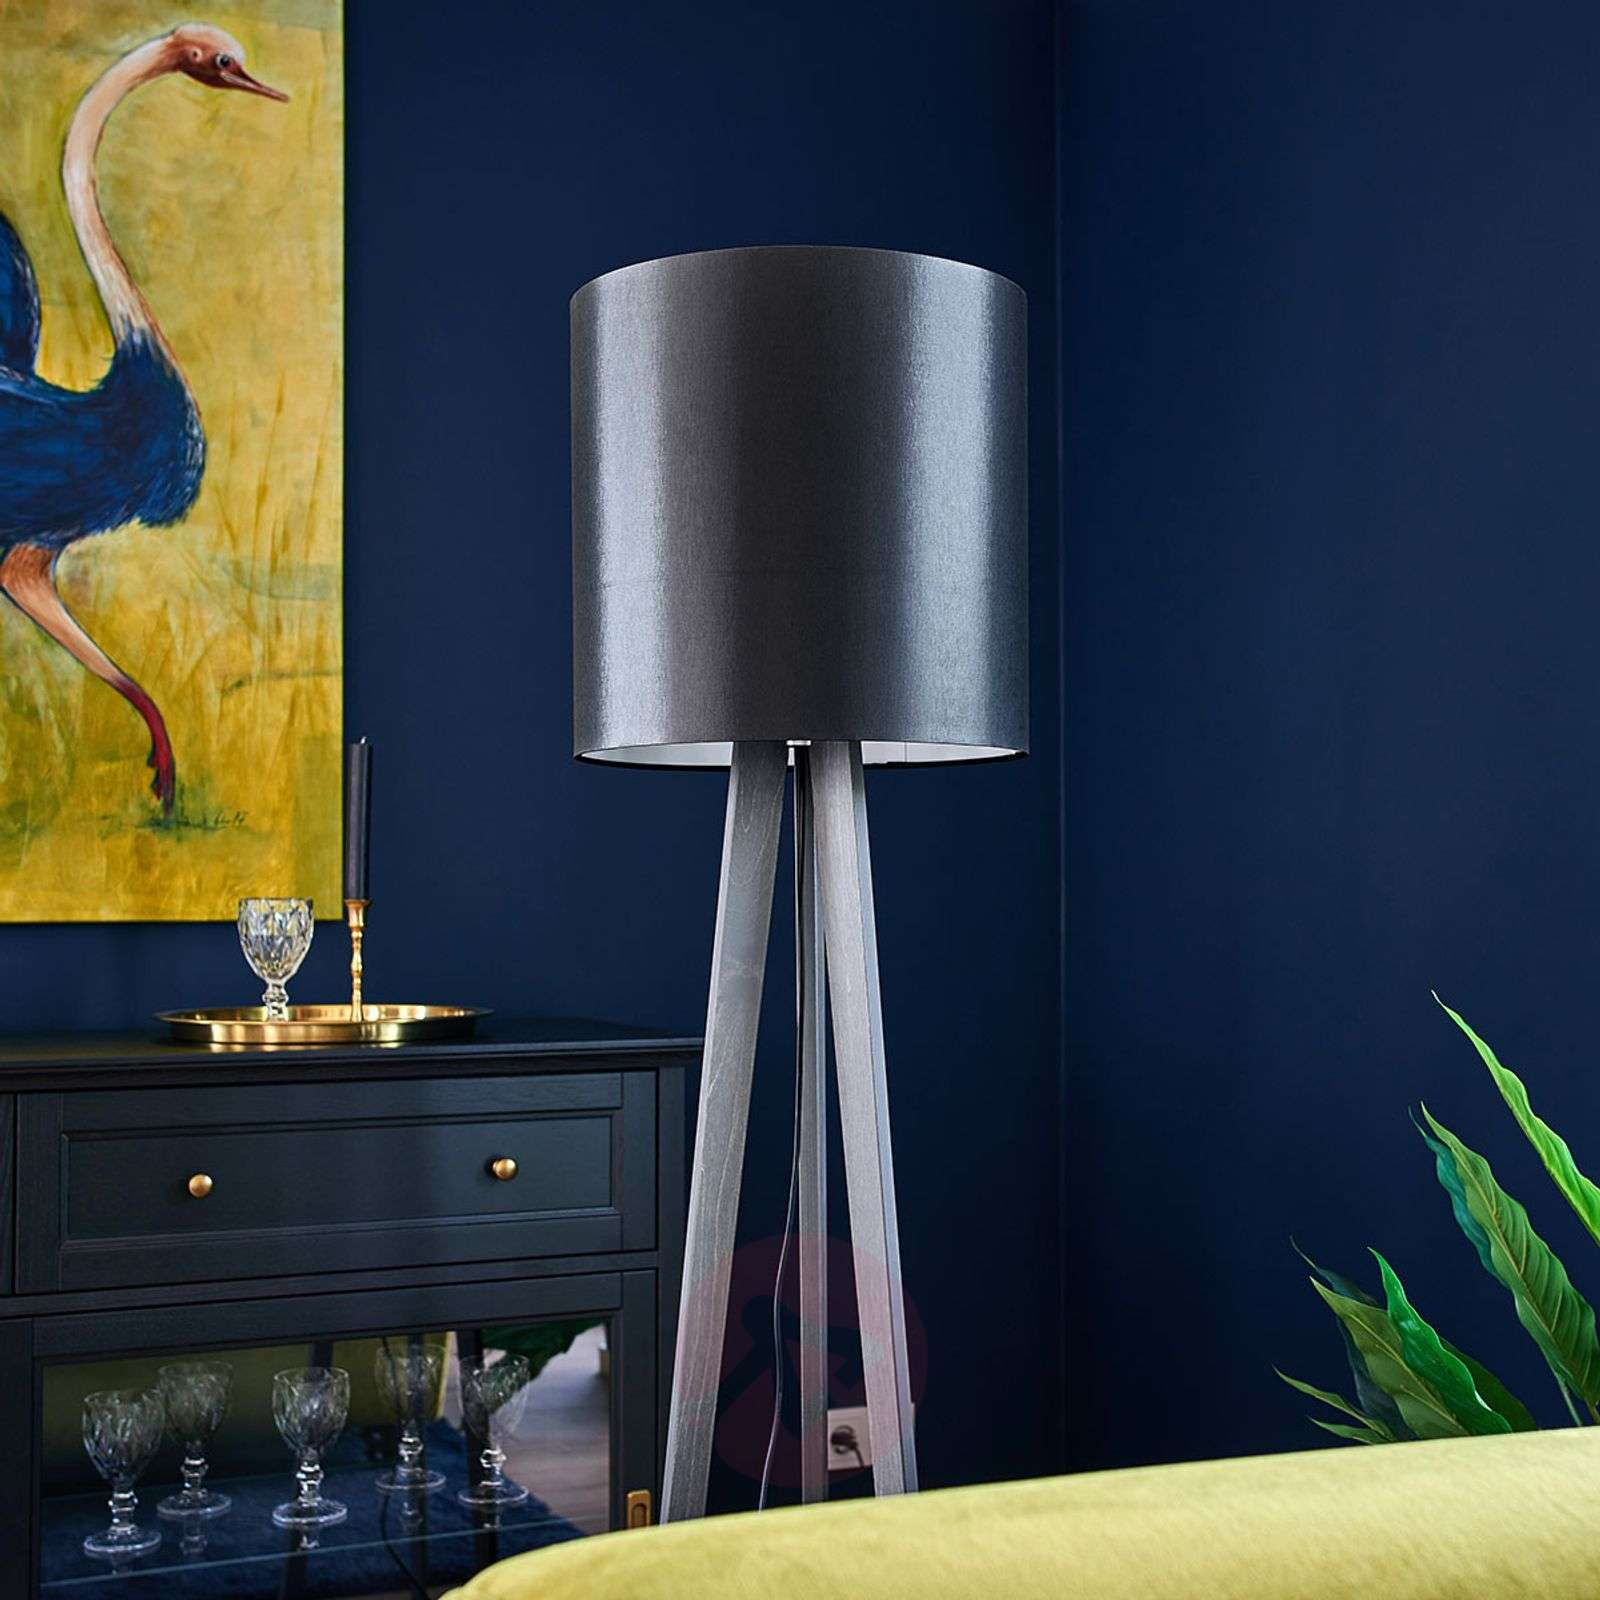 Tripod fabric floor lamp Nida, black-grey-6722440-01